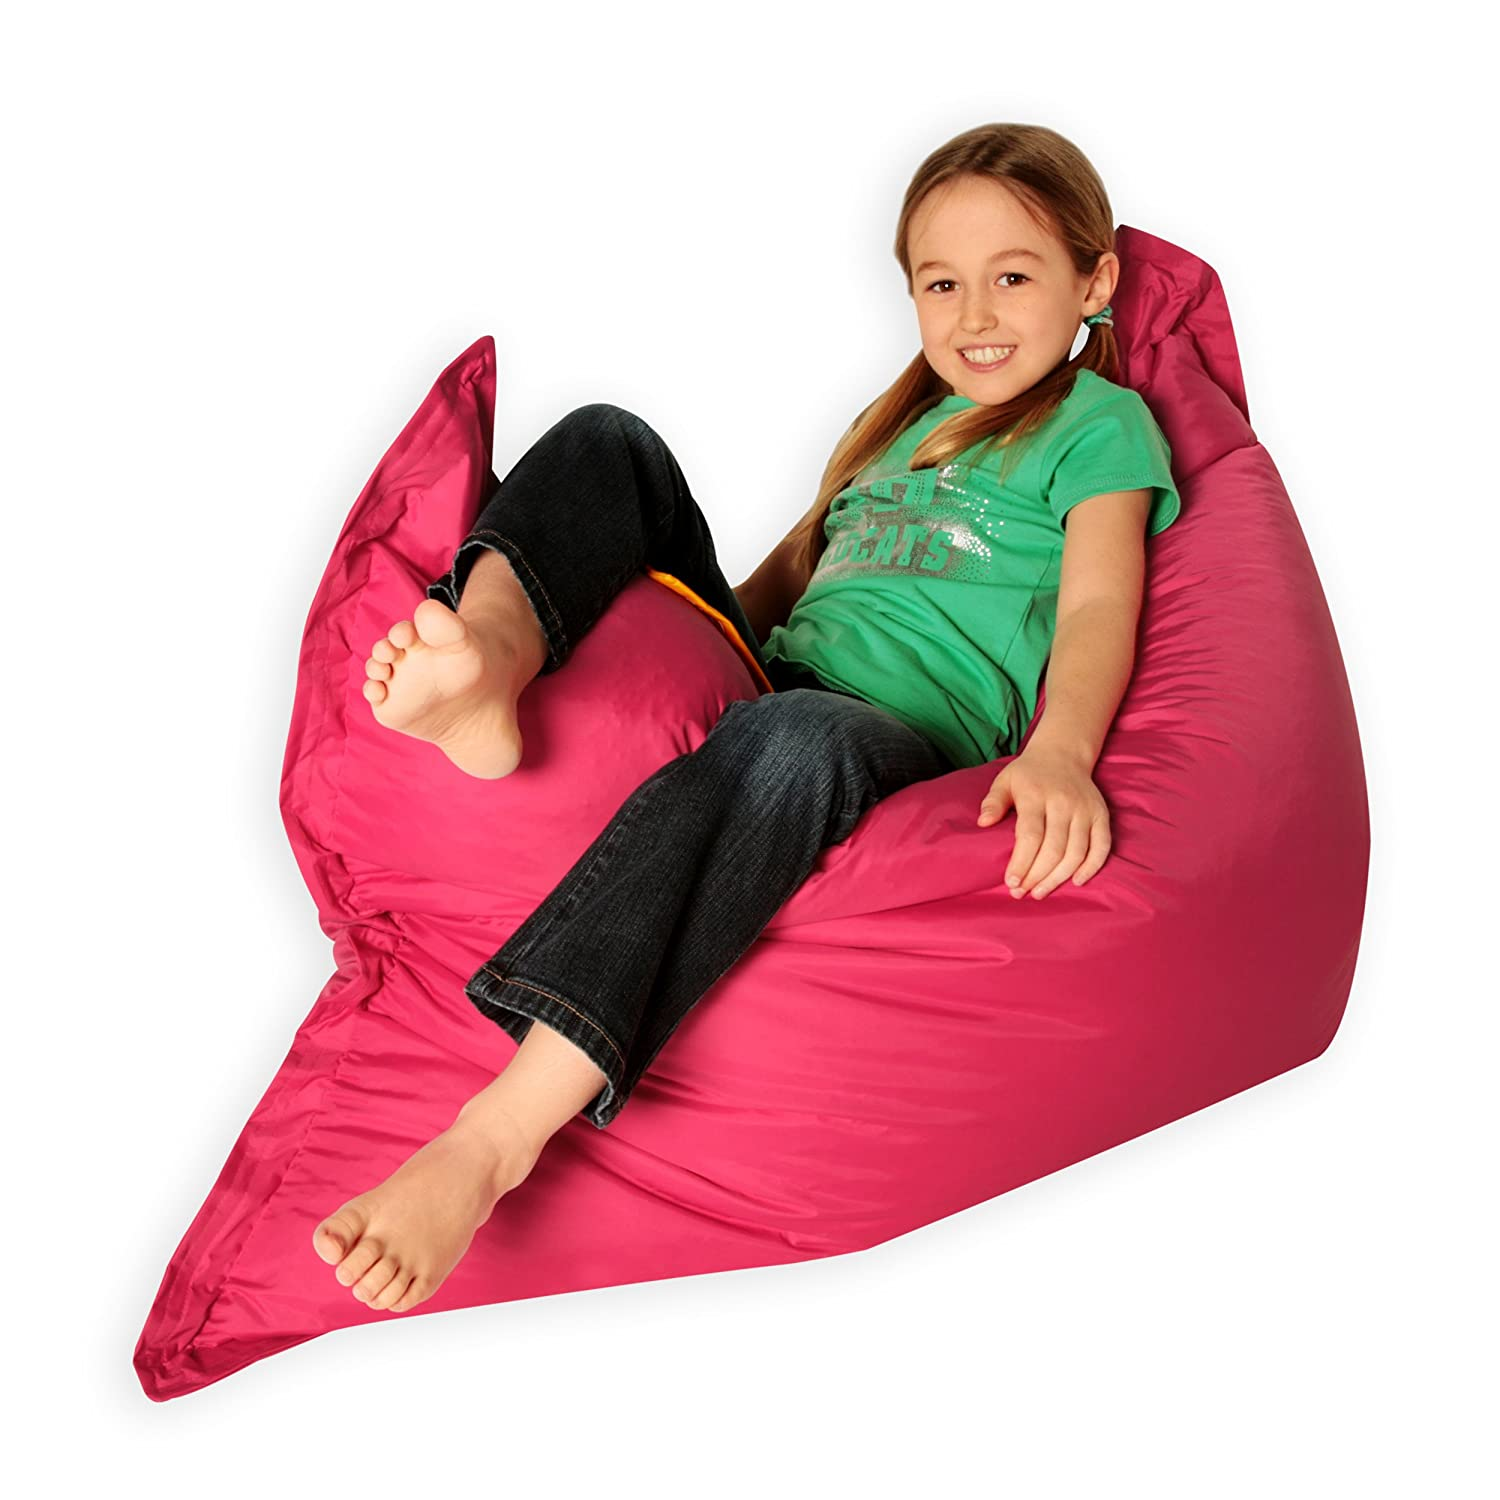 Kids BAZ BAG PINK Beanbag Chair Indoor & Outdoor Kids Bean Bags